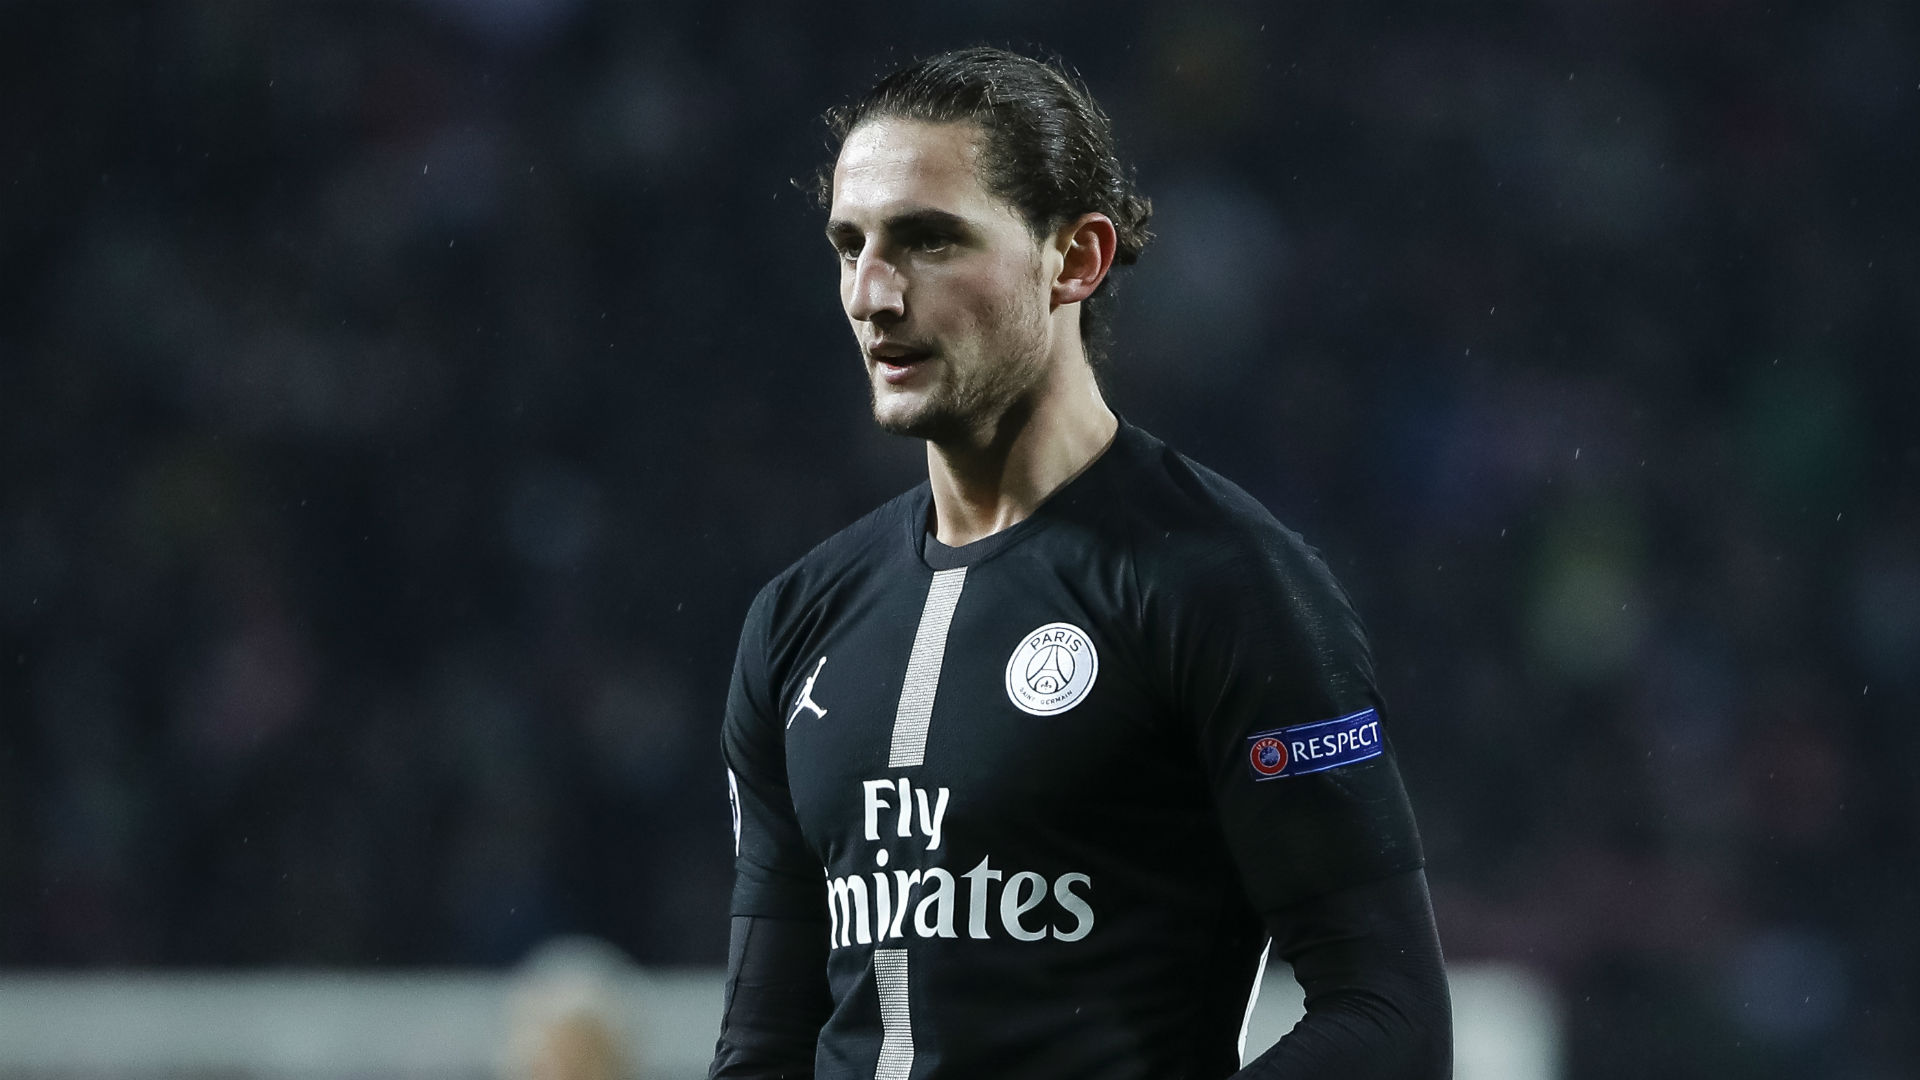 Barça and Rabiot have reached contract agreement — Le Parisien